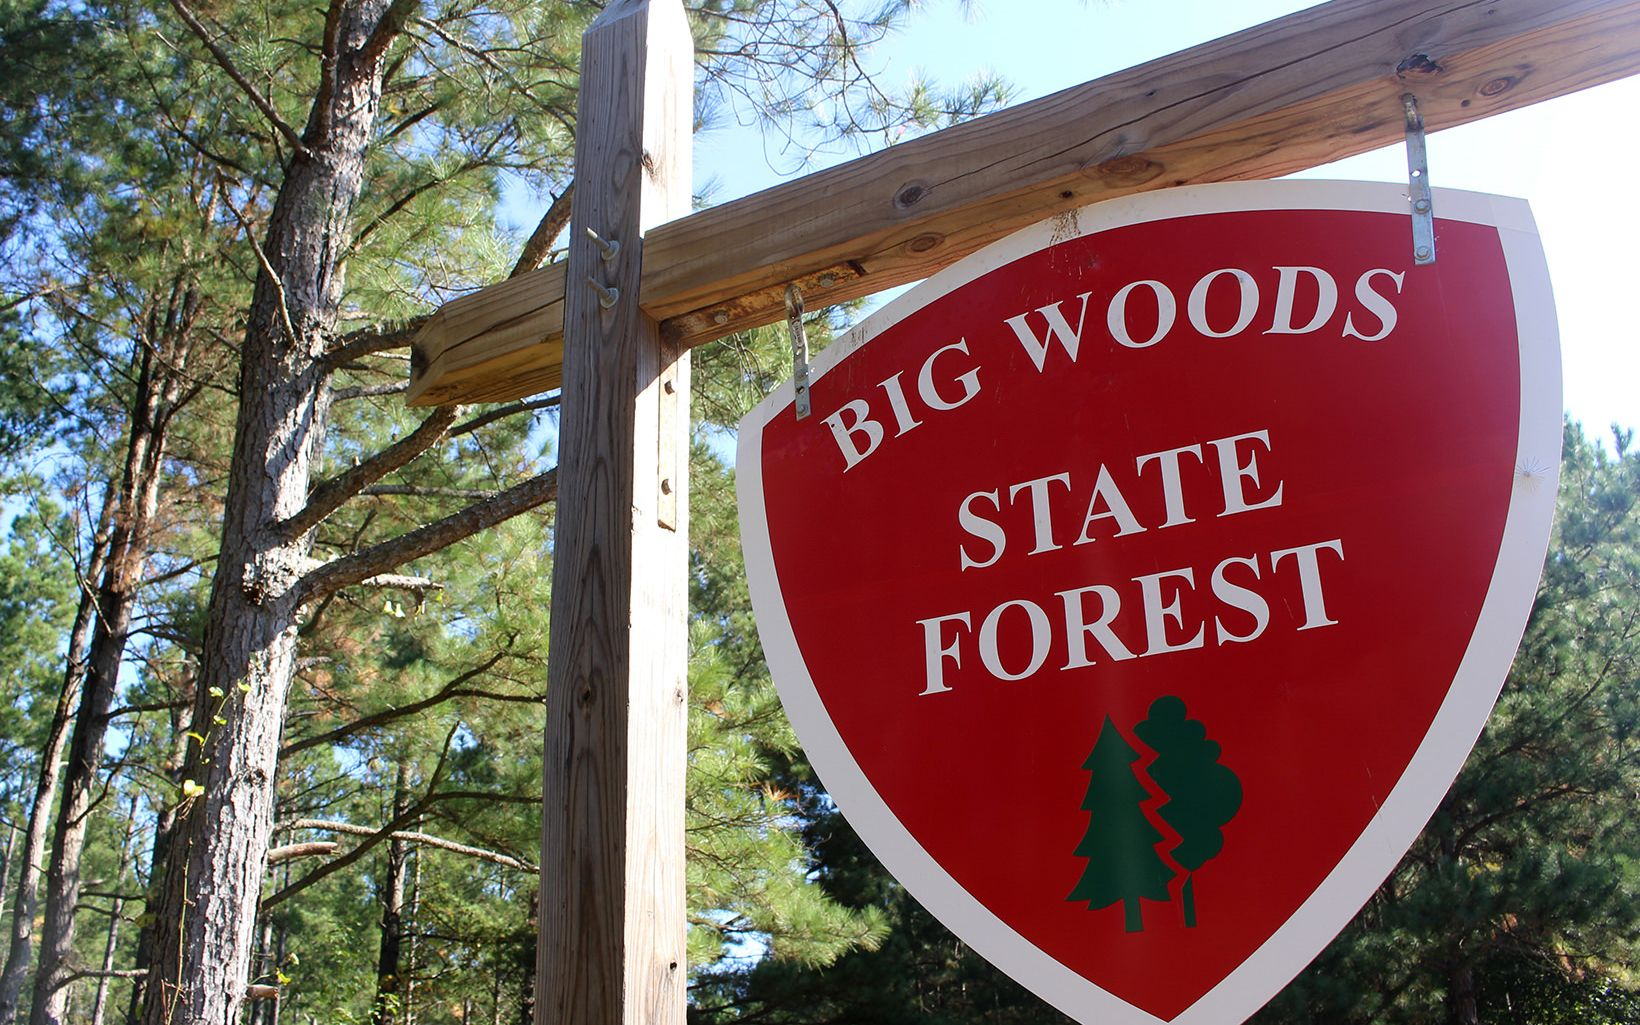 Big Woods State Forest, Big Woods Wildlife Management Area and Piney Grove Preserve together protect more than 7,500 acres of critical forest habitat.